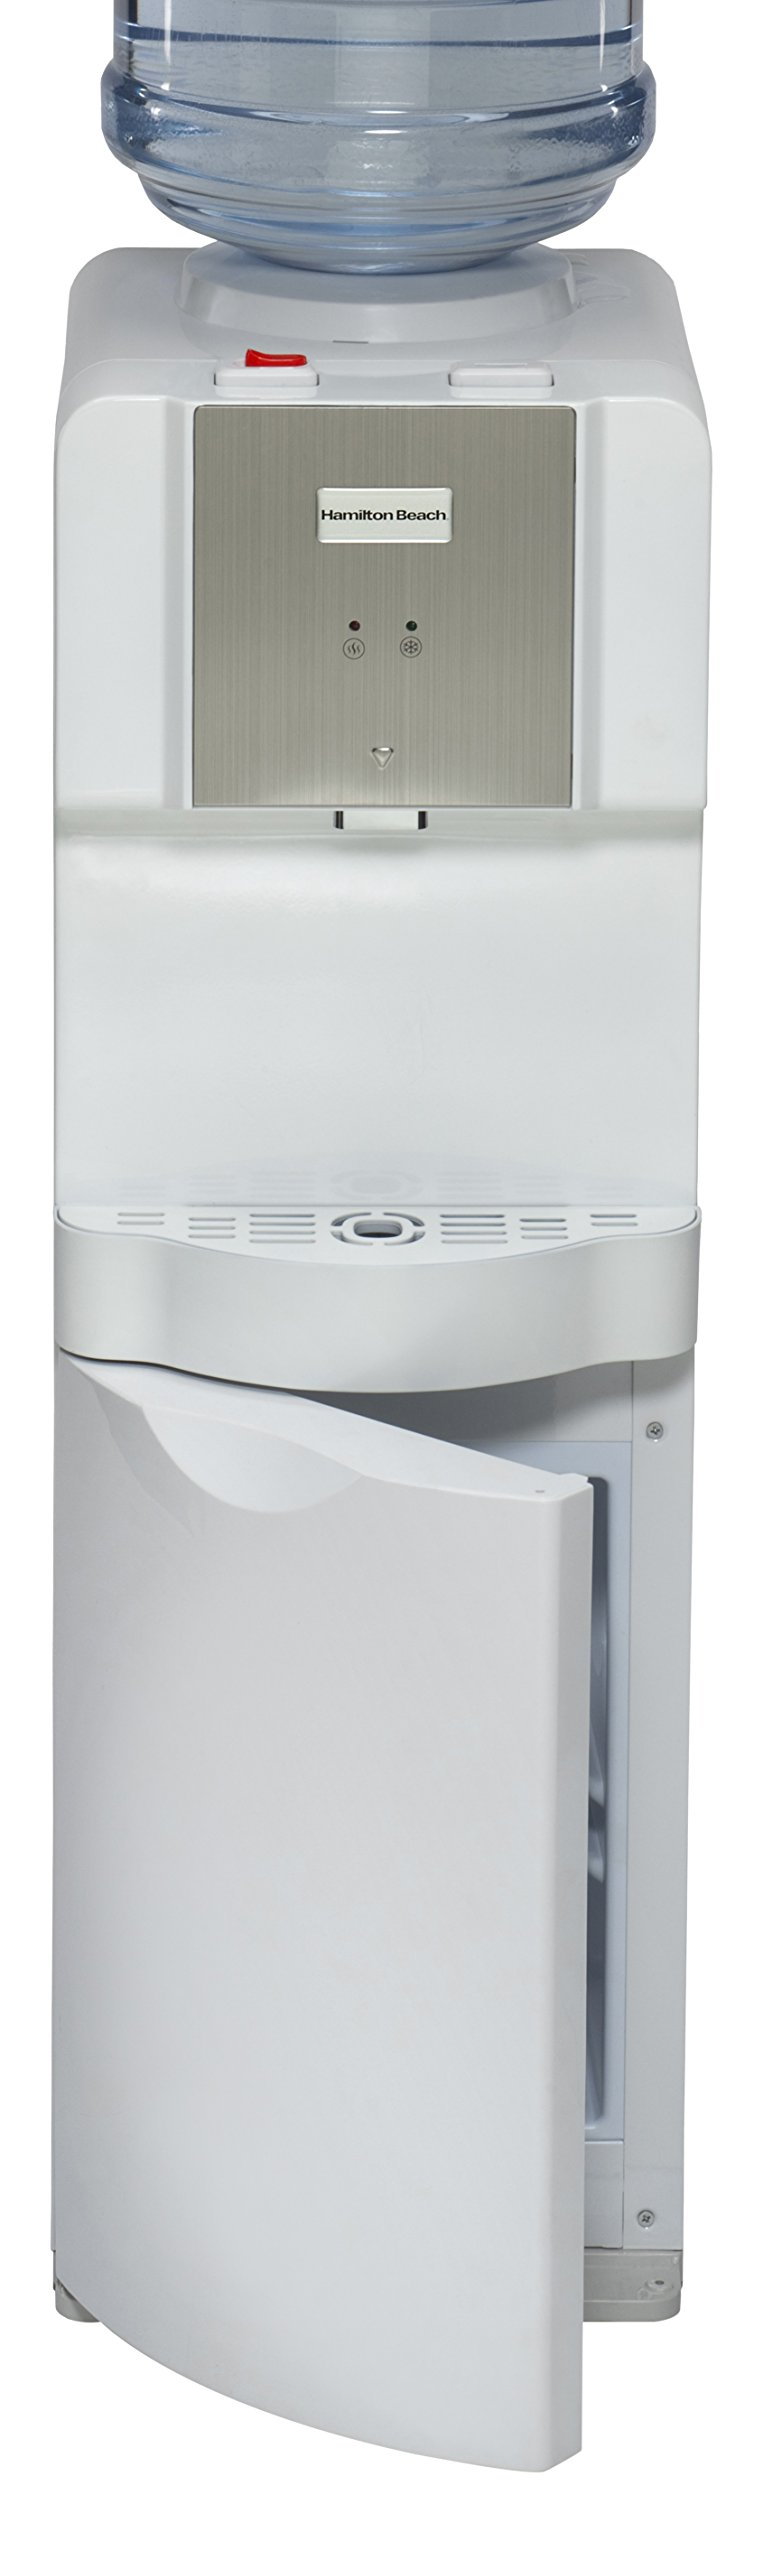 Hamilton Beach TL-1-4A Top Loading Water Dispenser with Storage Cabinet, Hot and Cold Temperatures, White by Hamilton Beach